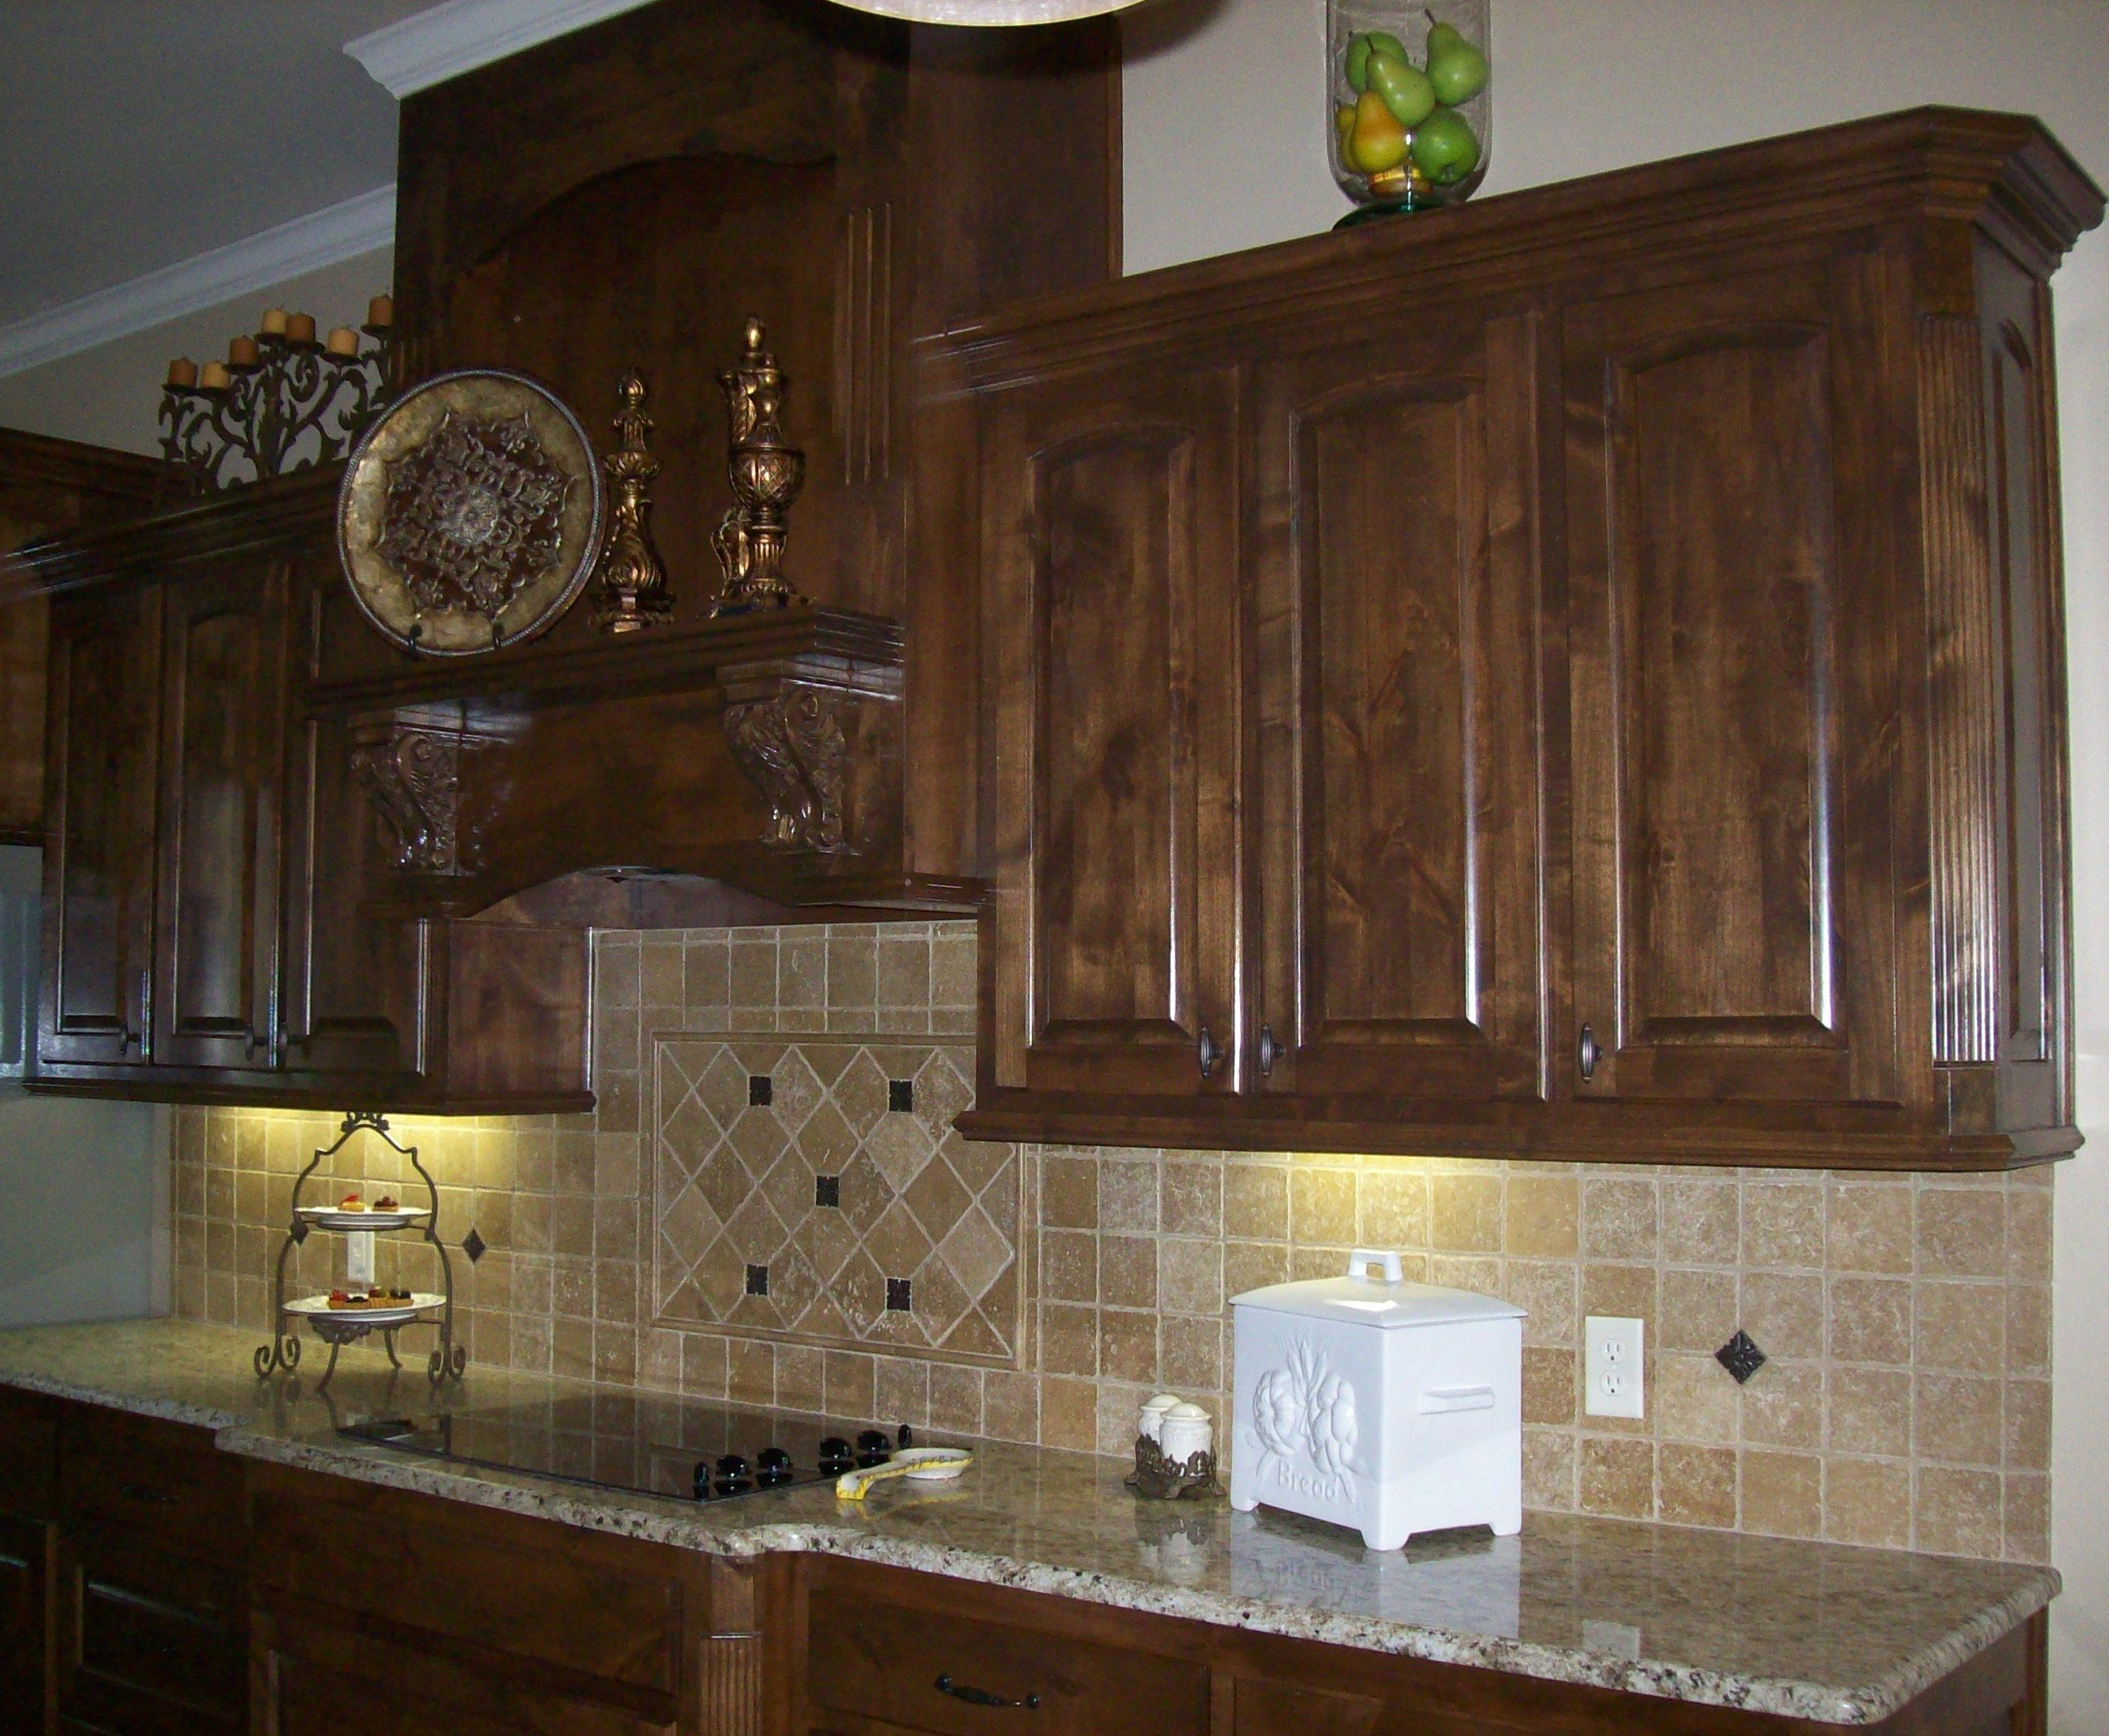 walnut stained kitchen cabinets our kitchen cabinets knotty alder in walnut stain not 28161